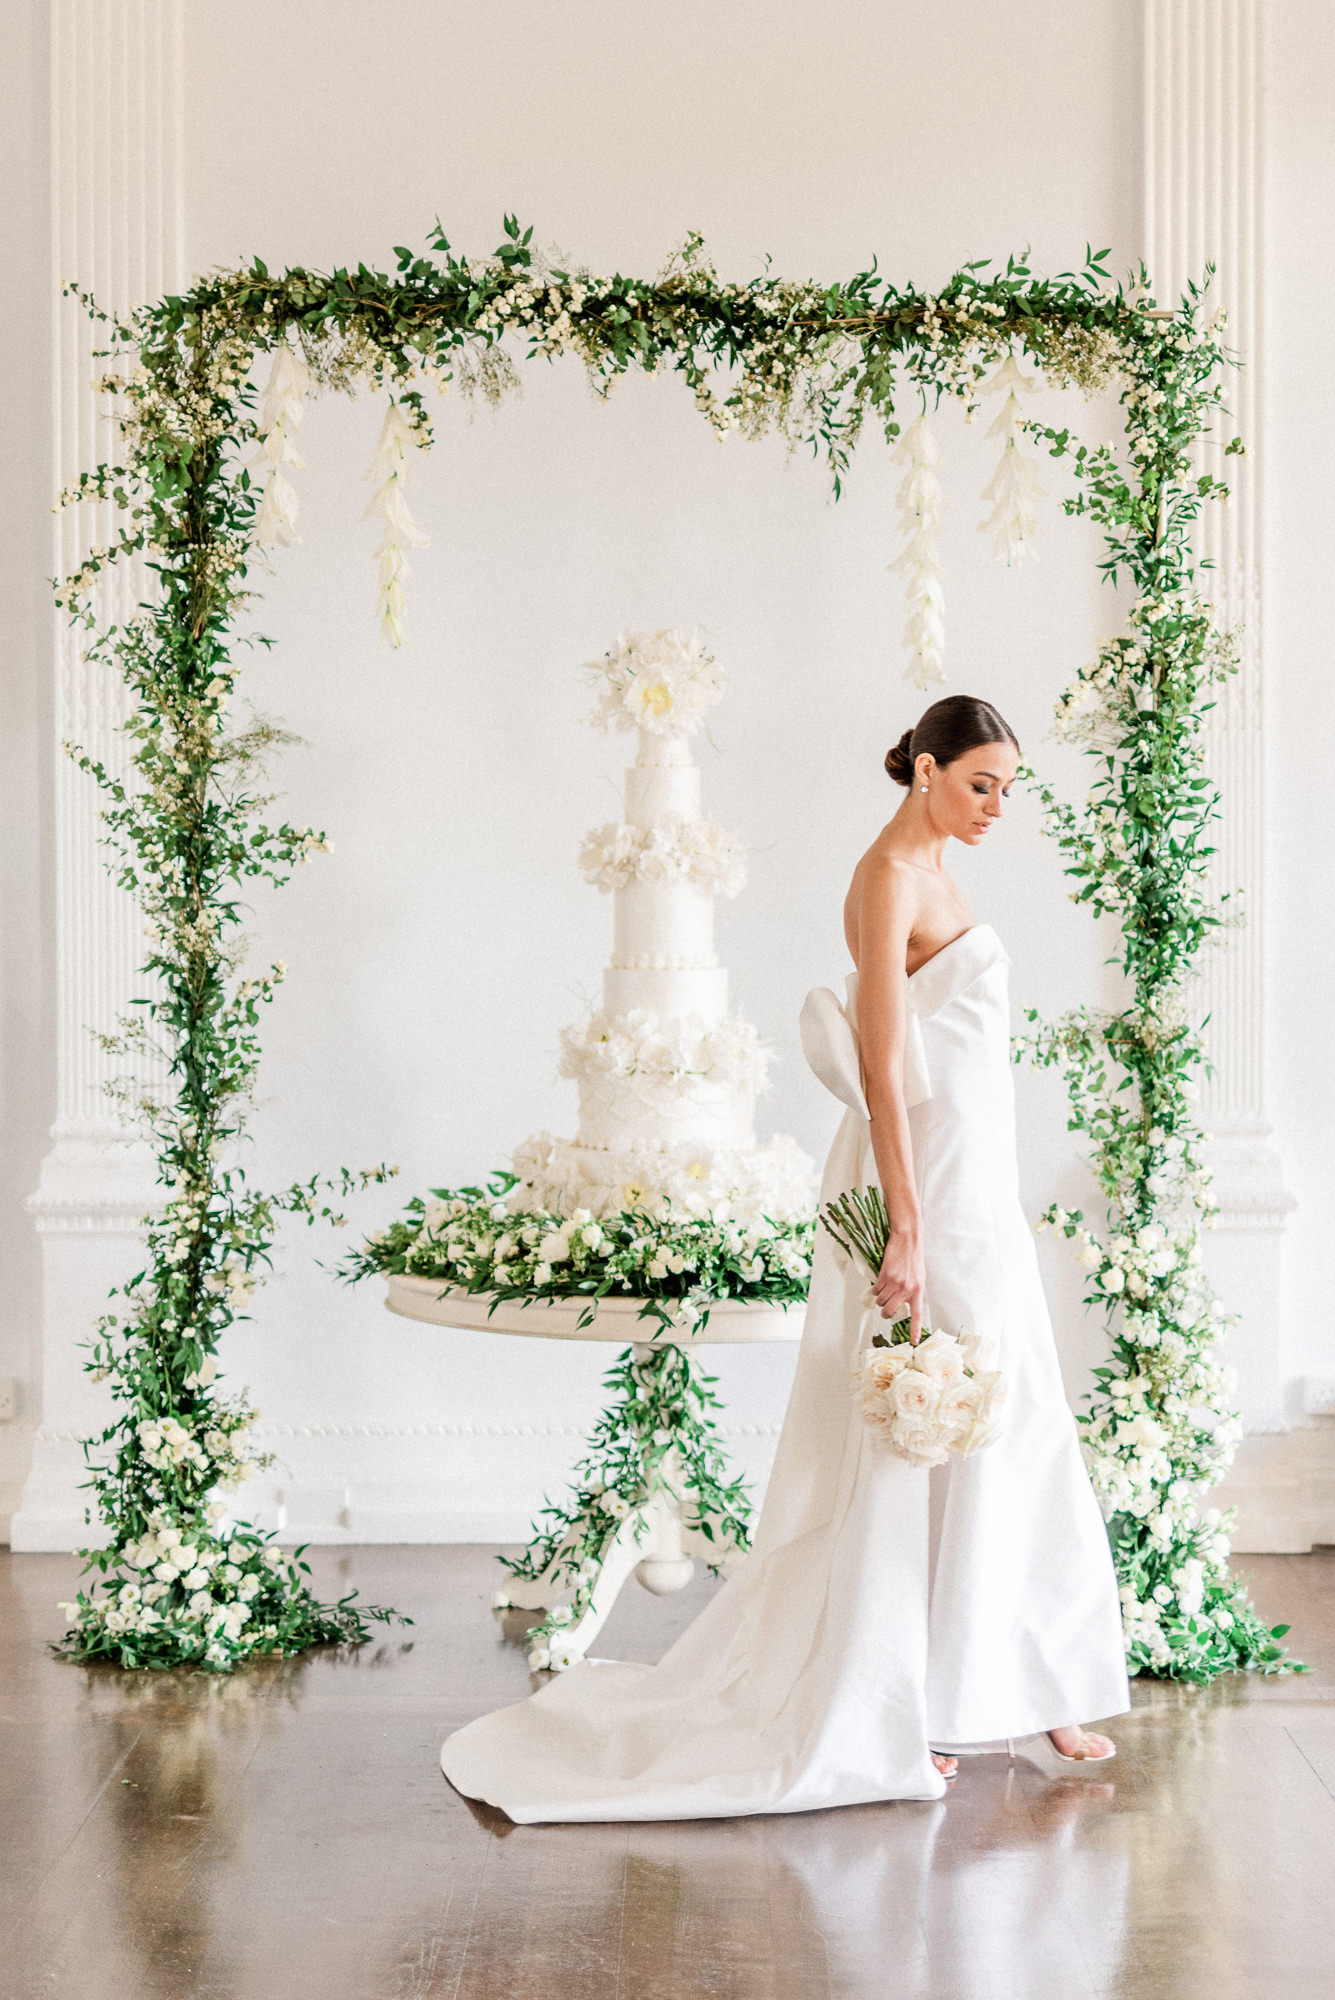 Bride with fondant floral cake and greenery arbor - photo by Gianluca Adoviaso Photography